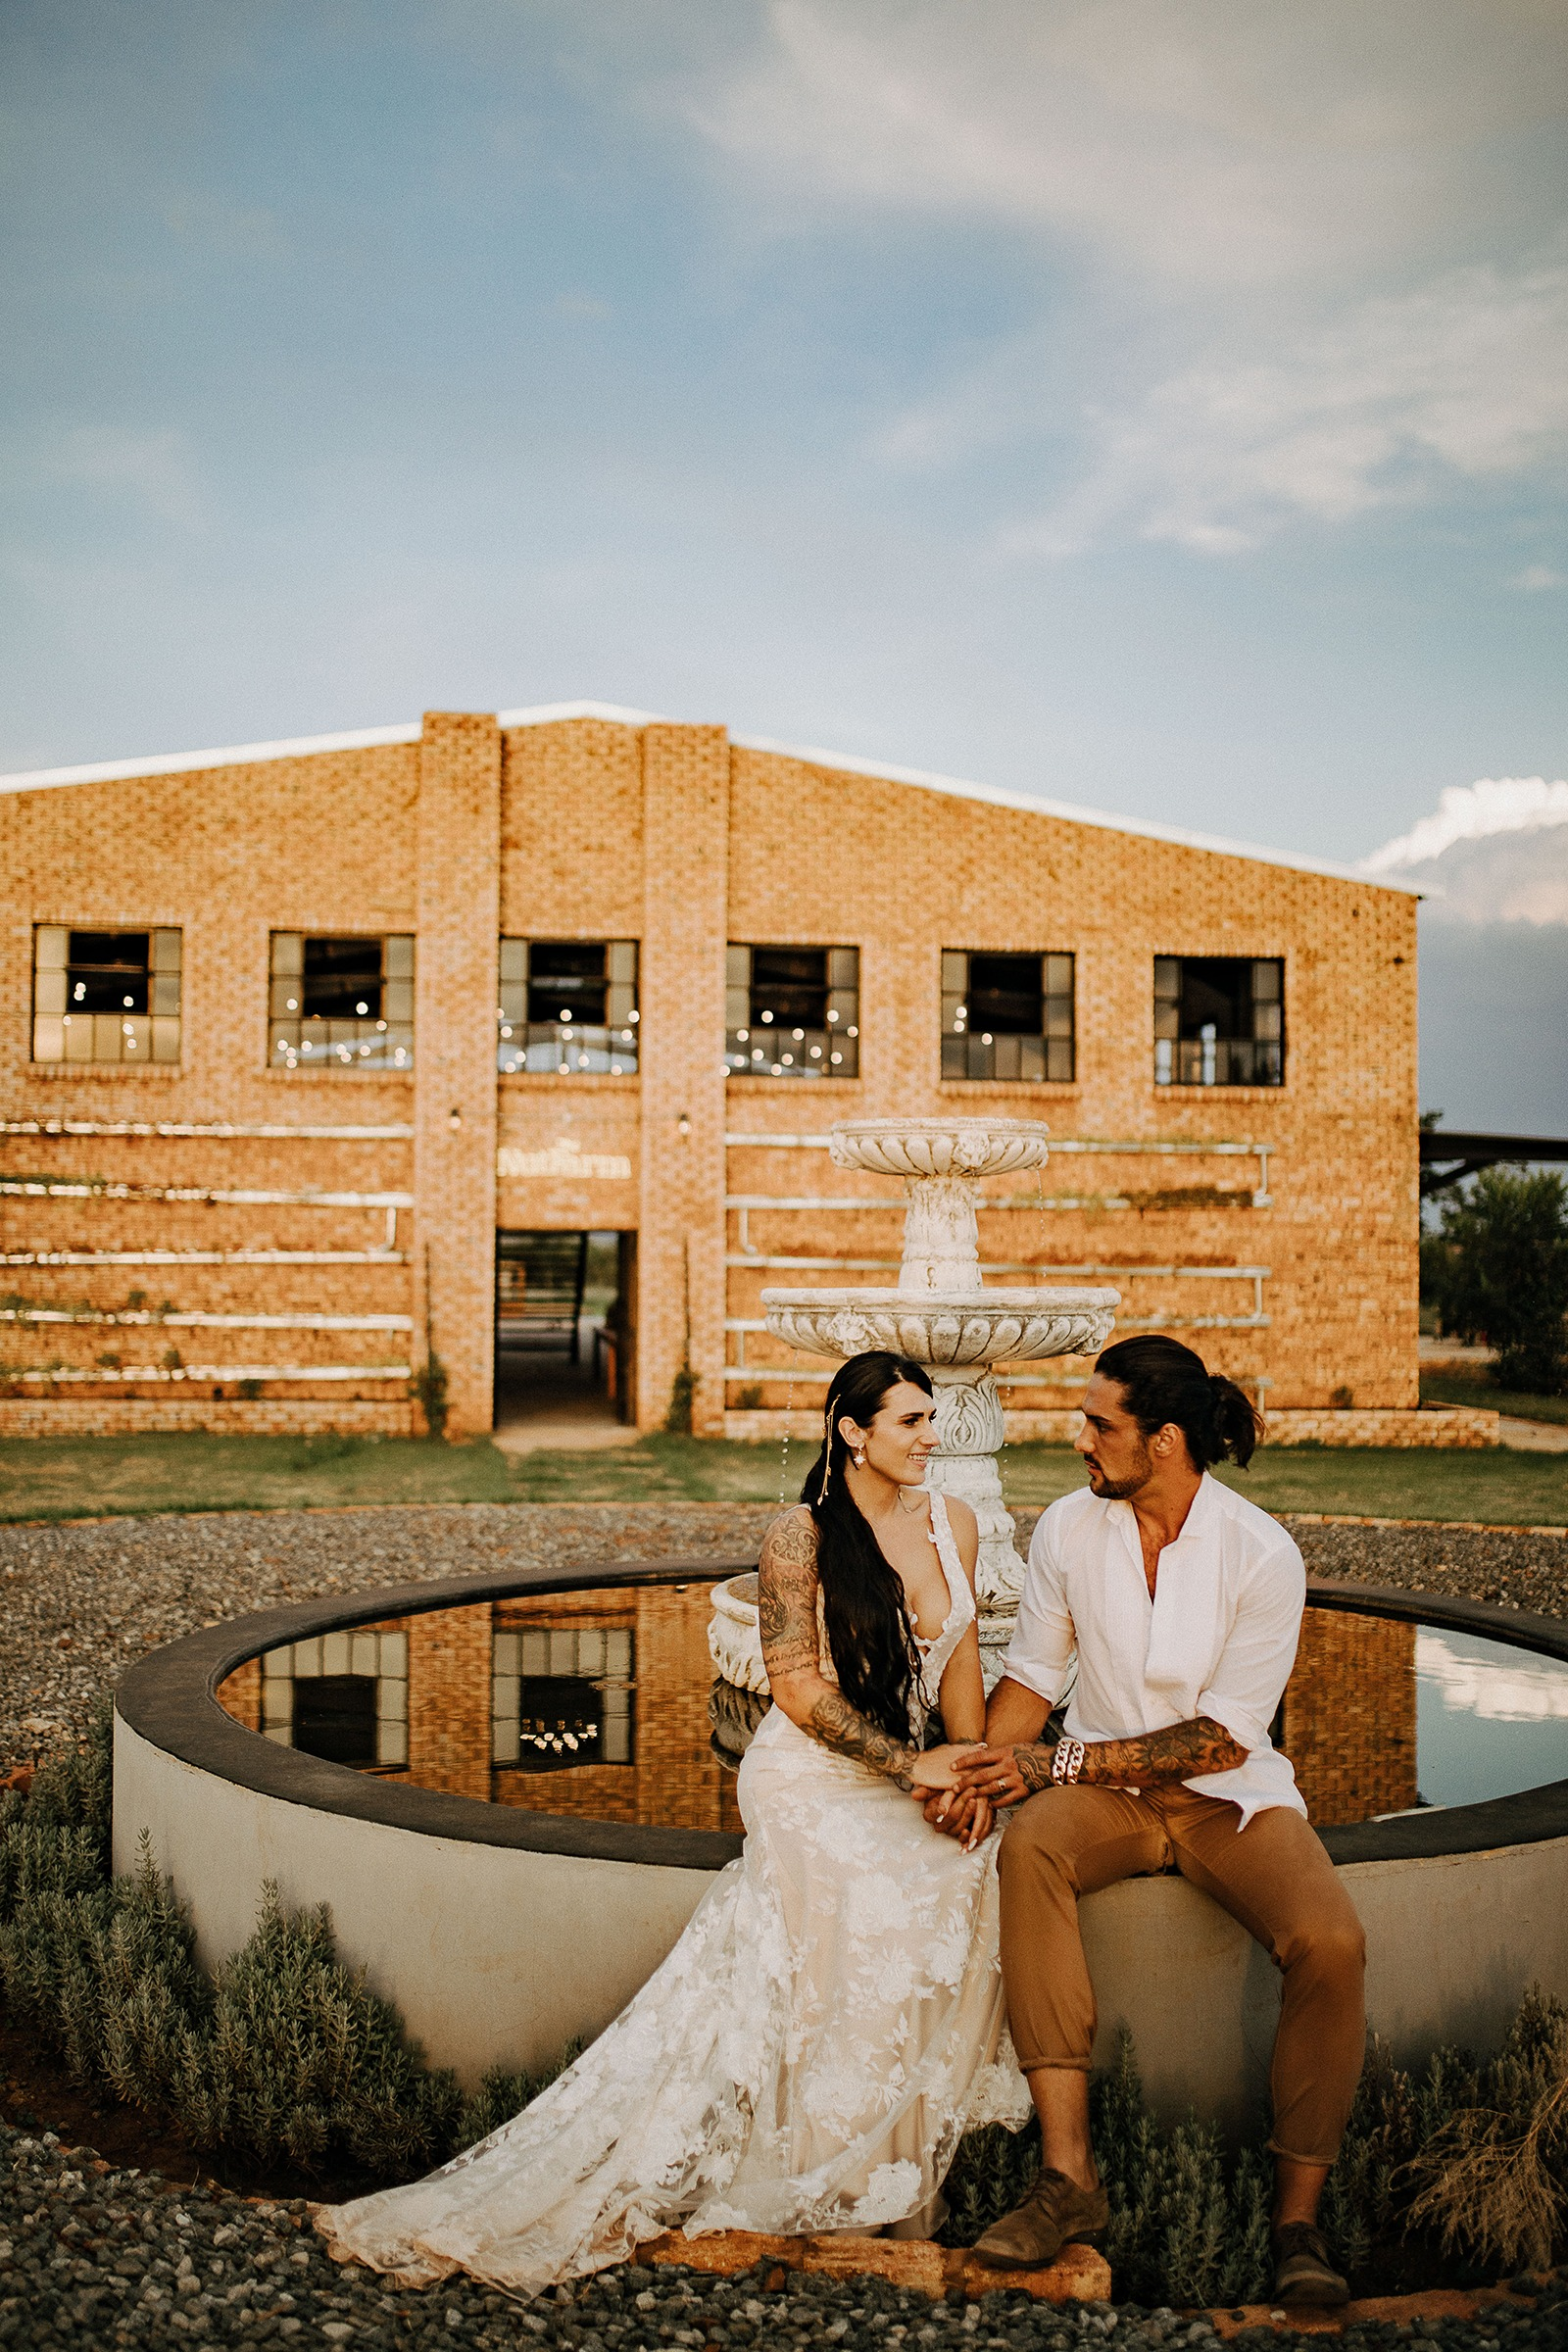 Wedding Venue in Hartbeespoort